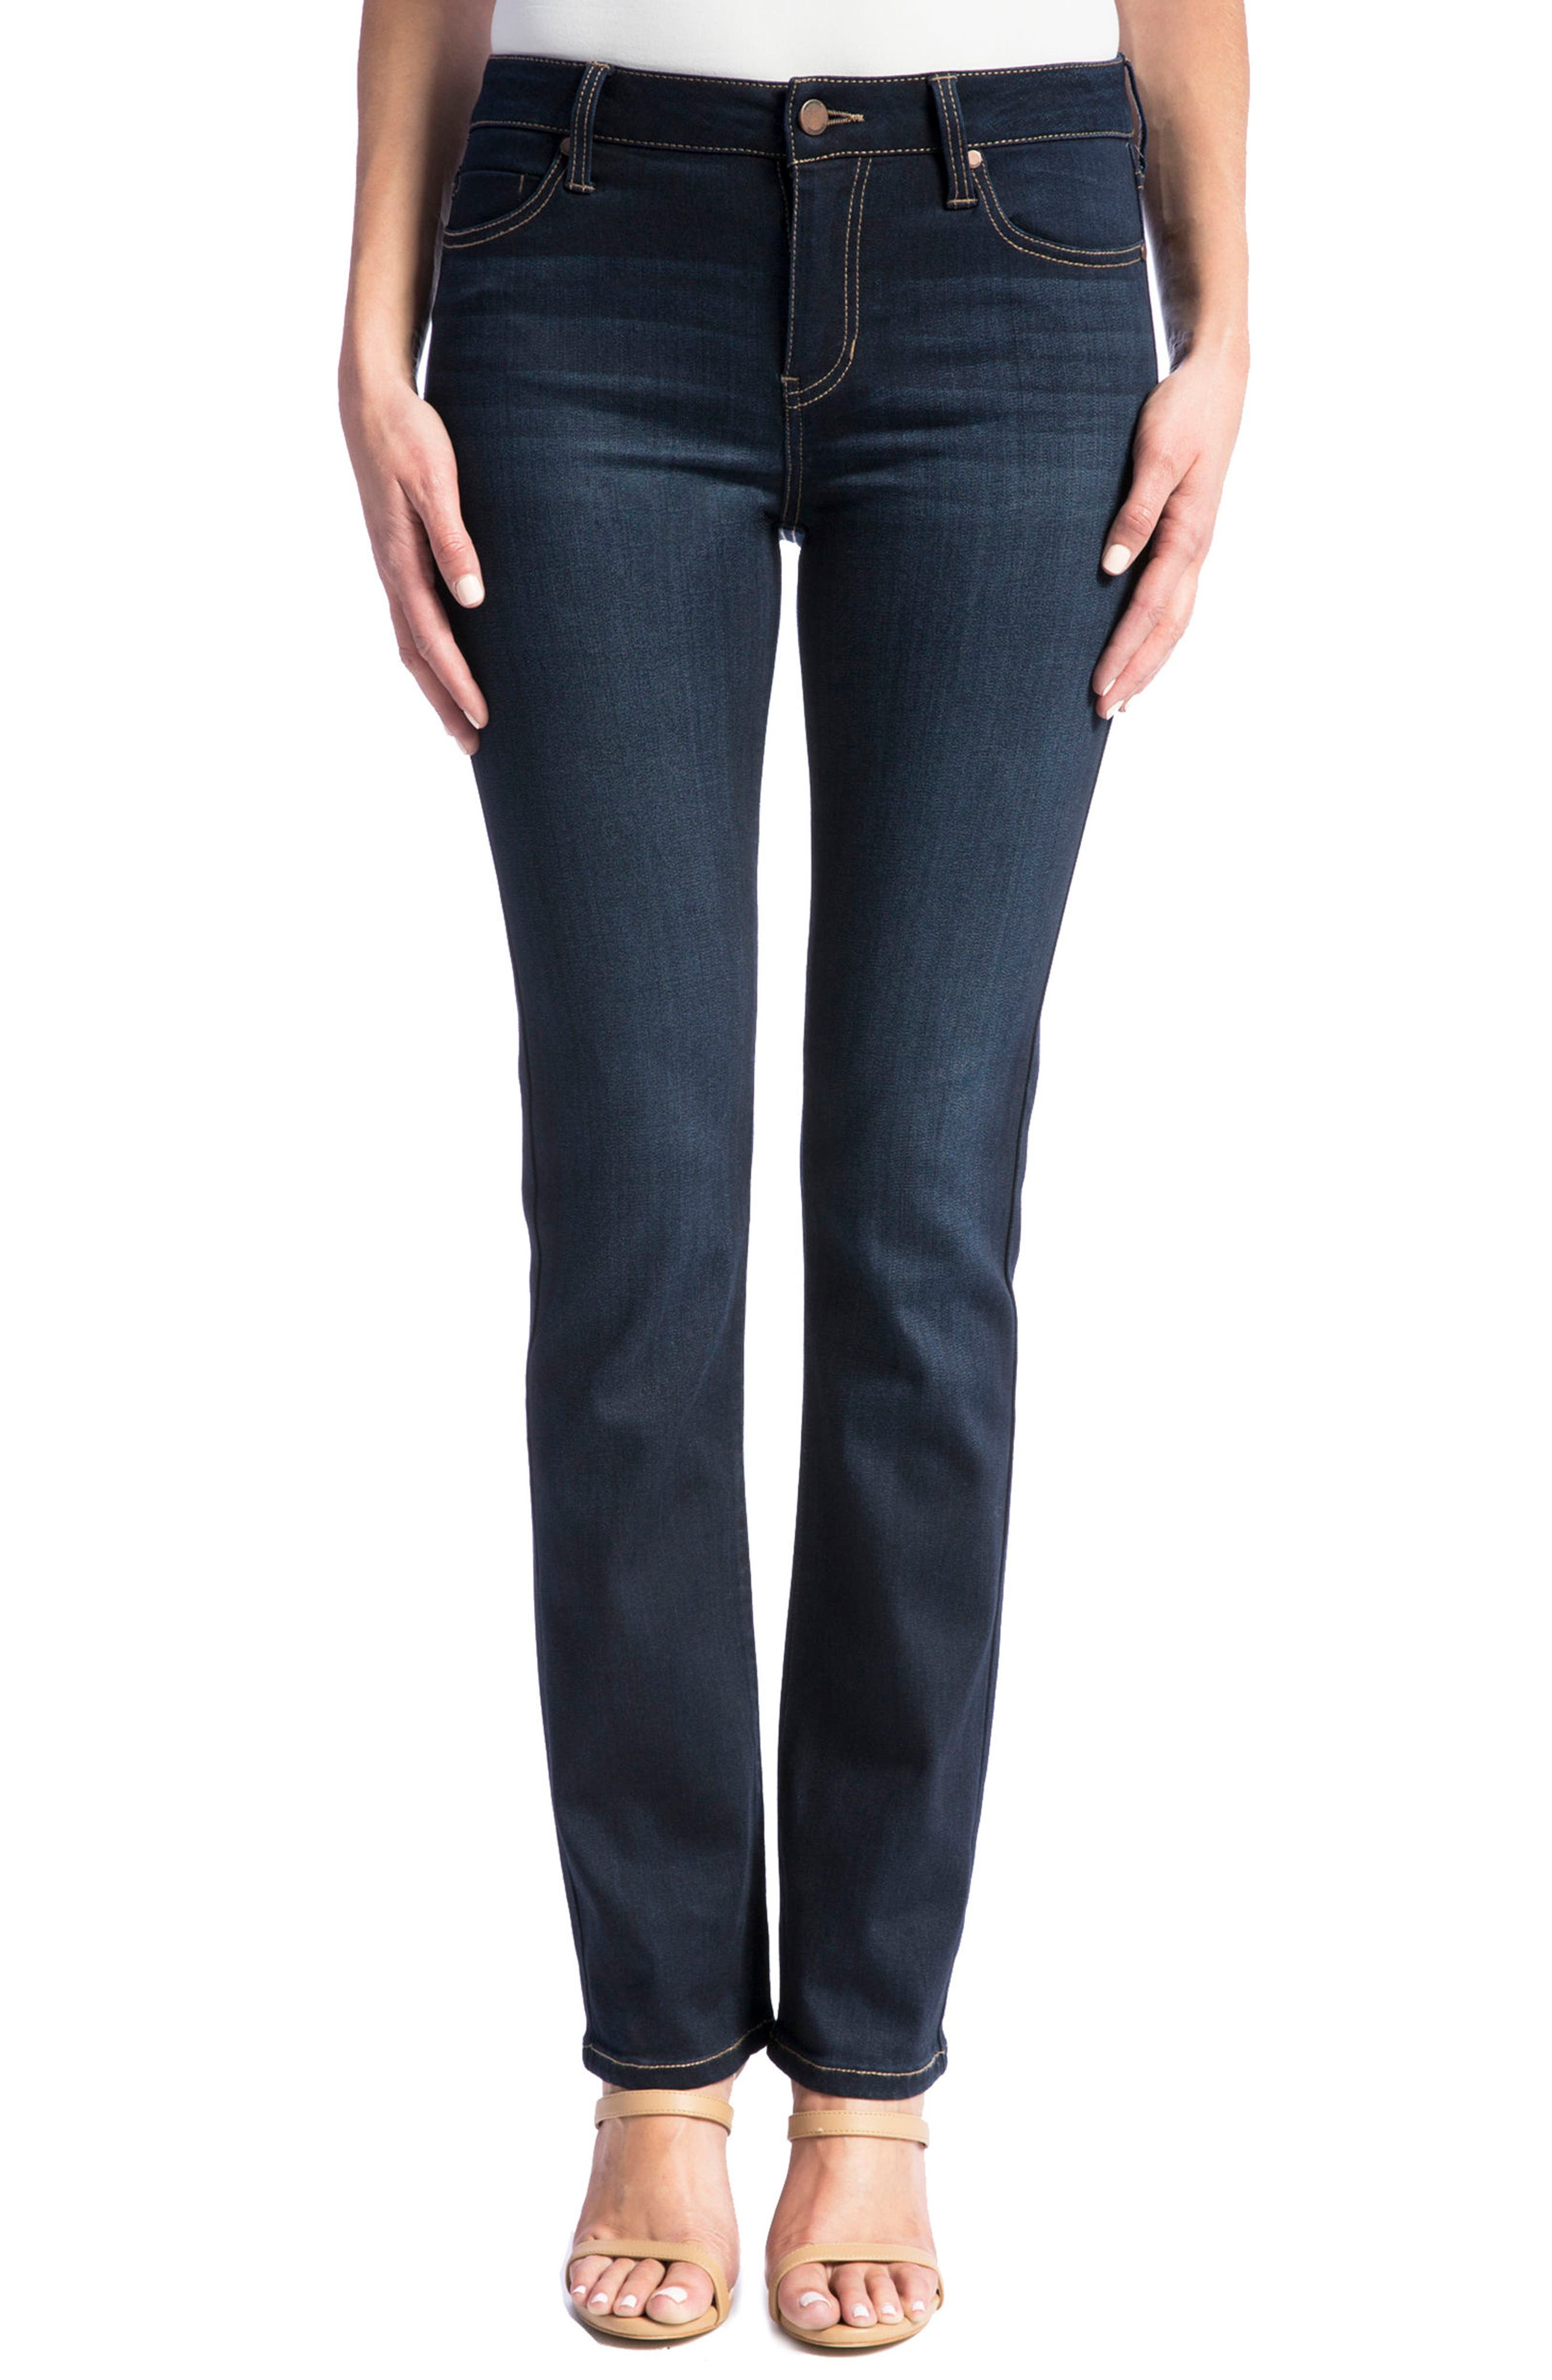 Alternate Image 1 Selected - Liverpool Jeans Co. Sadie Stretch Straight Leg Jeans (Stone) (Petite)